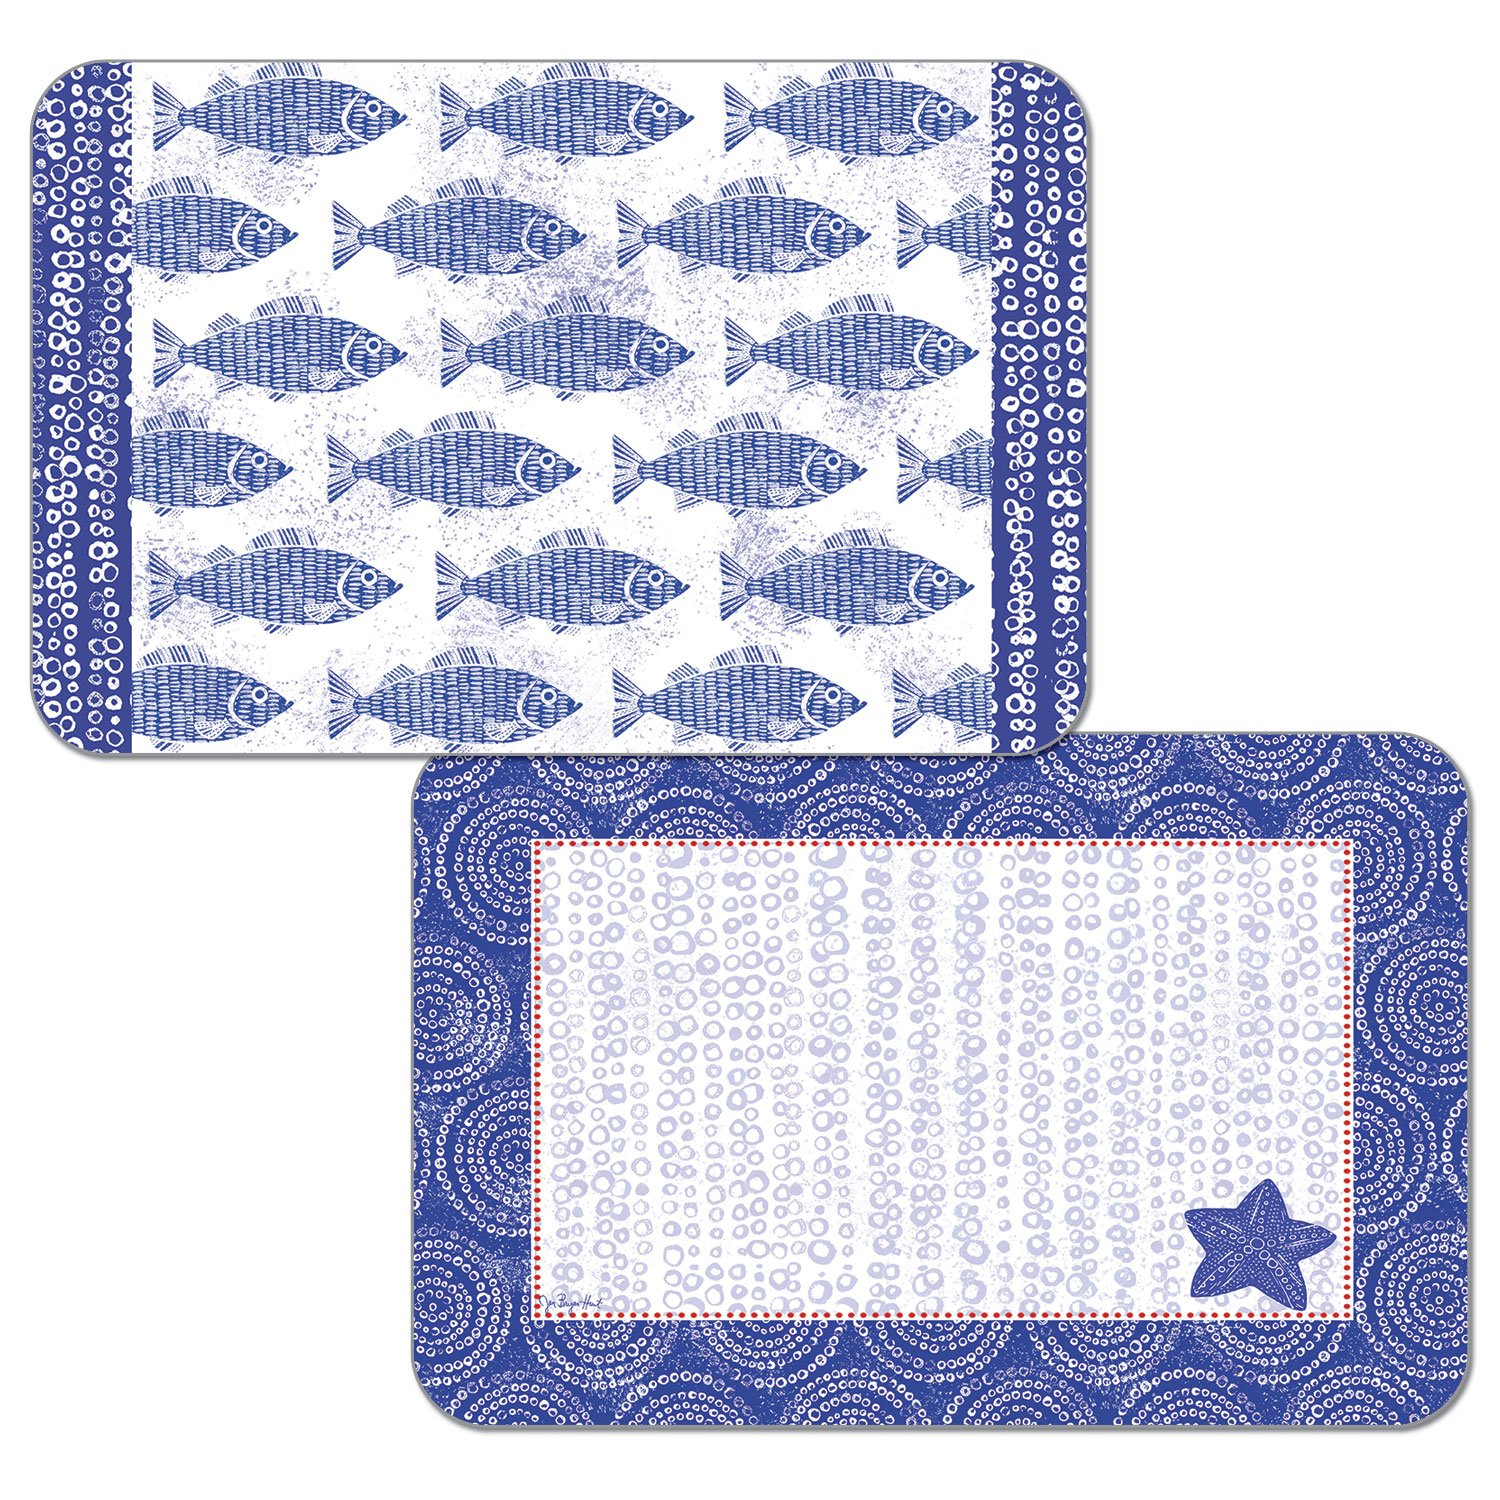 CounterArt Set of 4 Reversible Decofoam Placemats, School of Blue